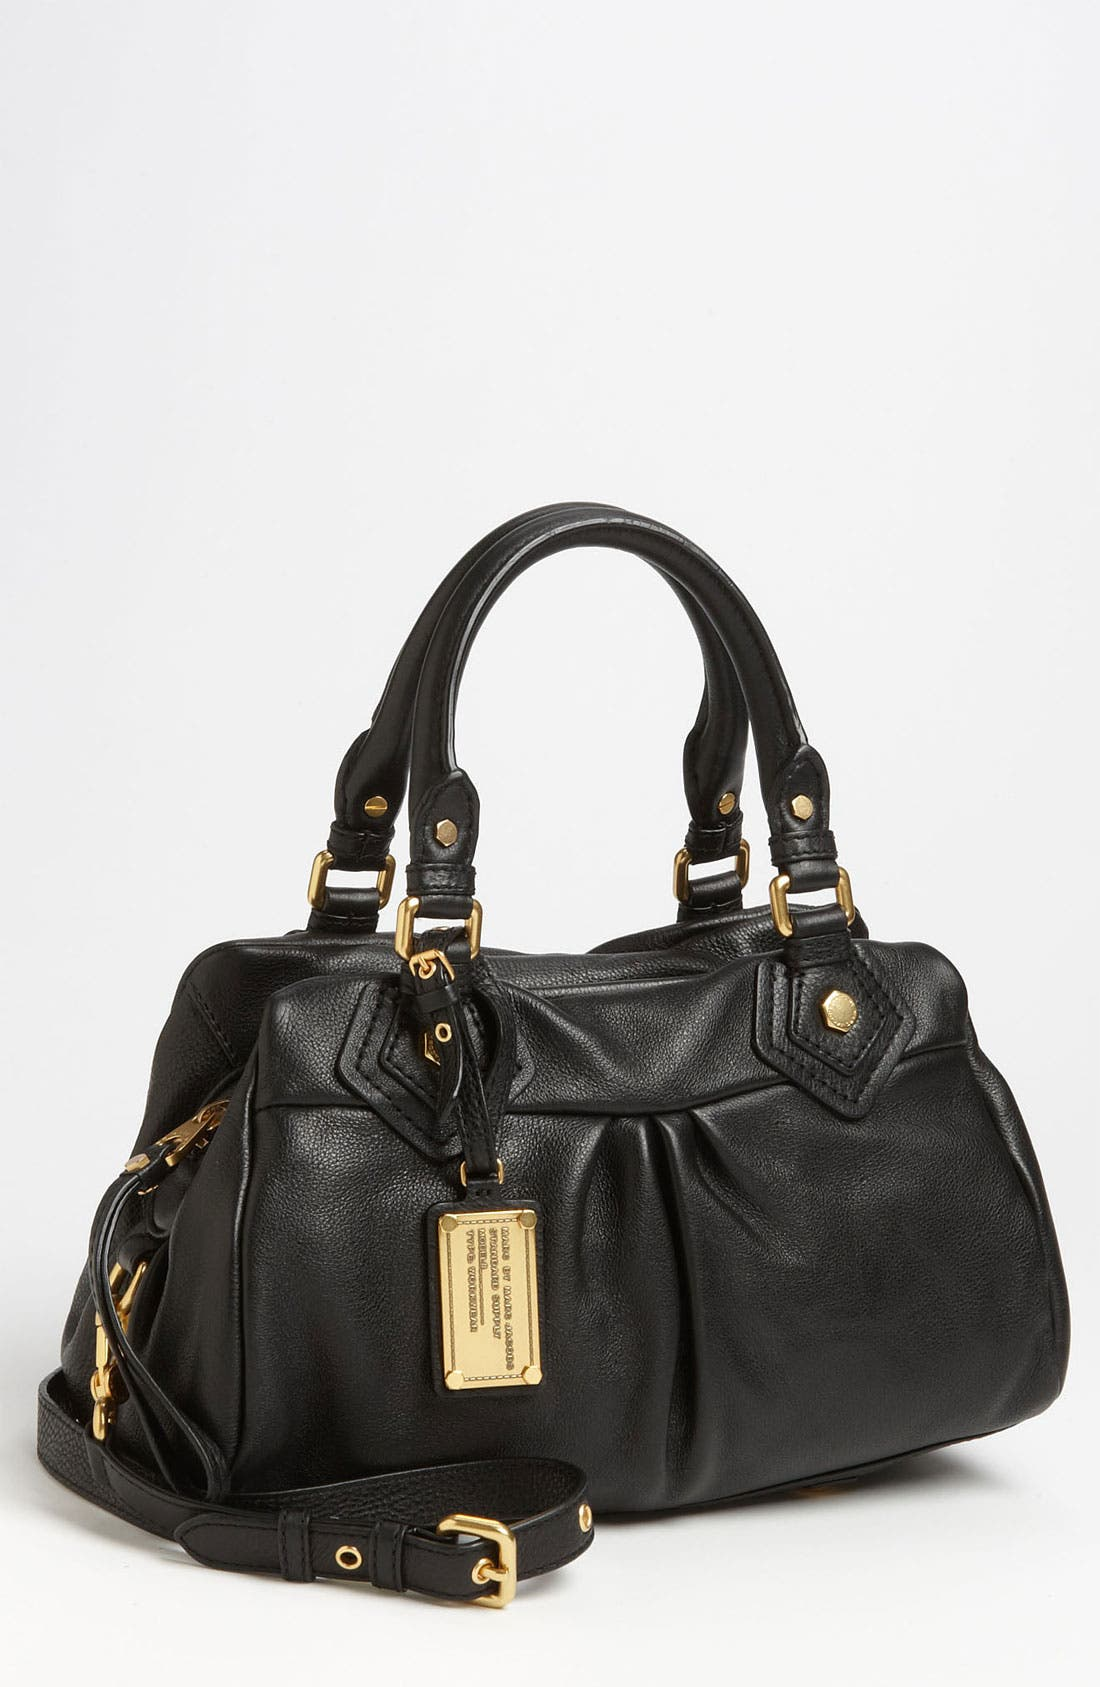 MARC BY MARC JACOBS 'Classic Q - Baby Groovee' Leather Satchel,                             Main thumbnail 1, color,                             002